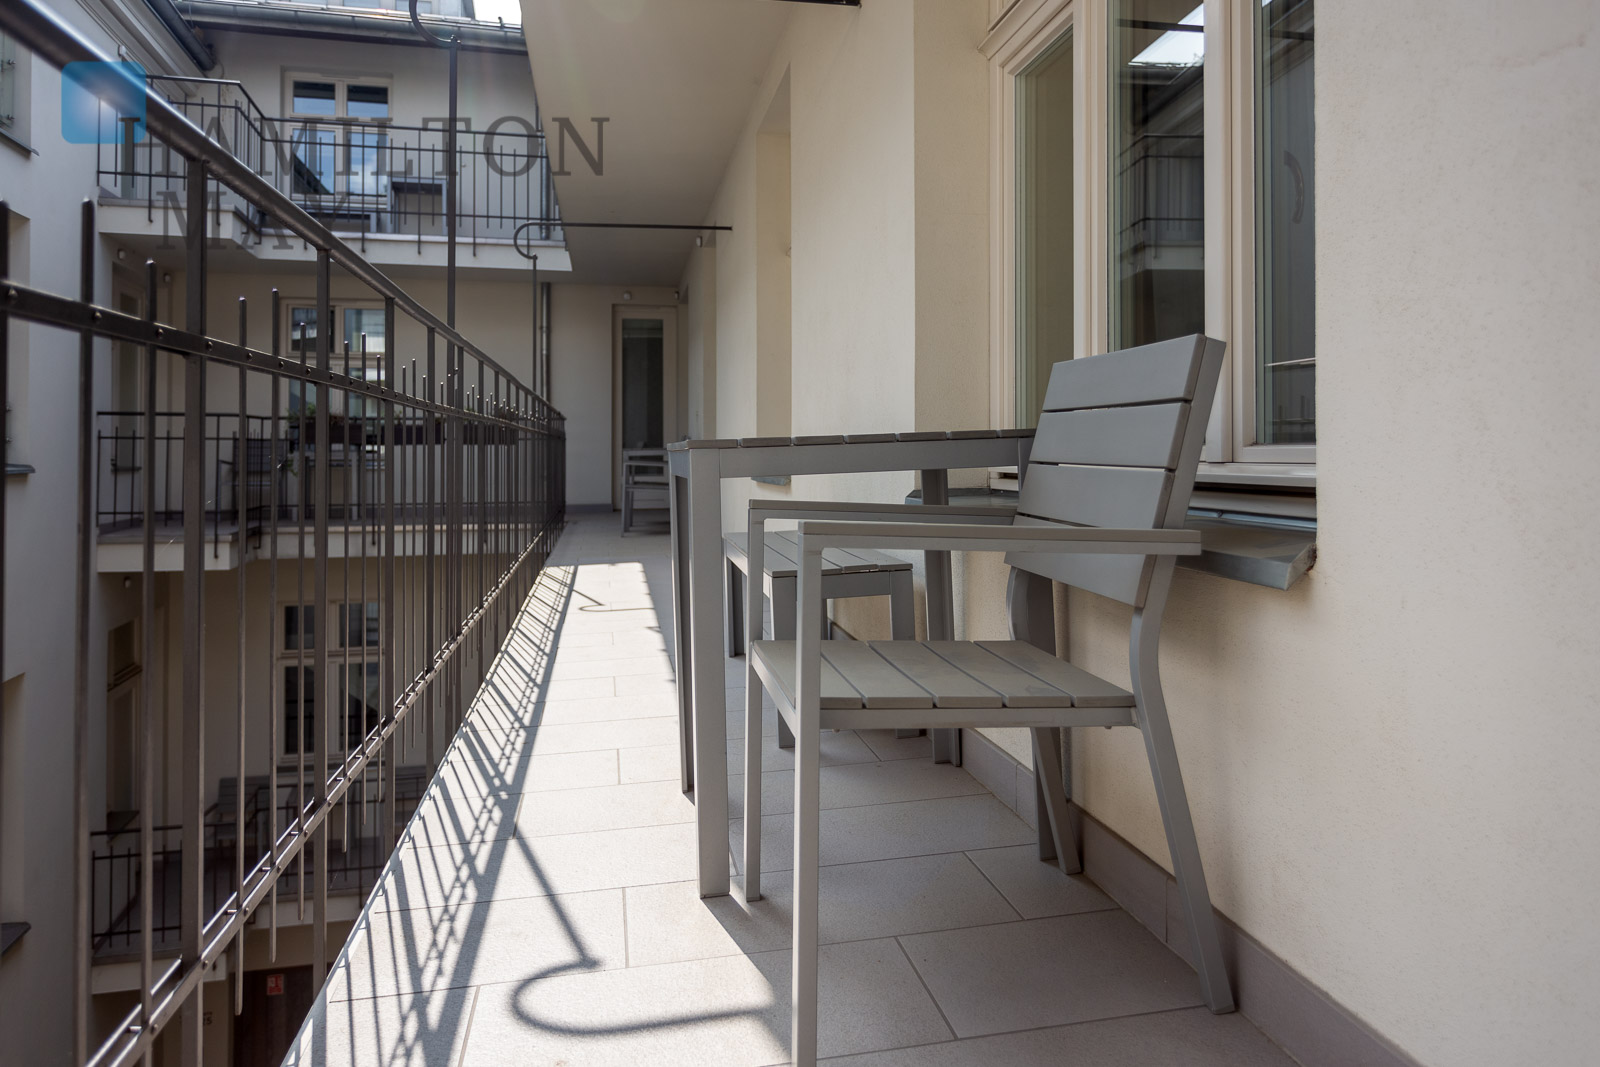 Air-conditioned apartment with two bedrooms and a balcony in the vicinity of the Wawel Castle Krakow for rent